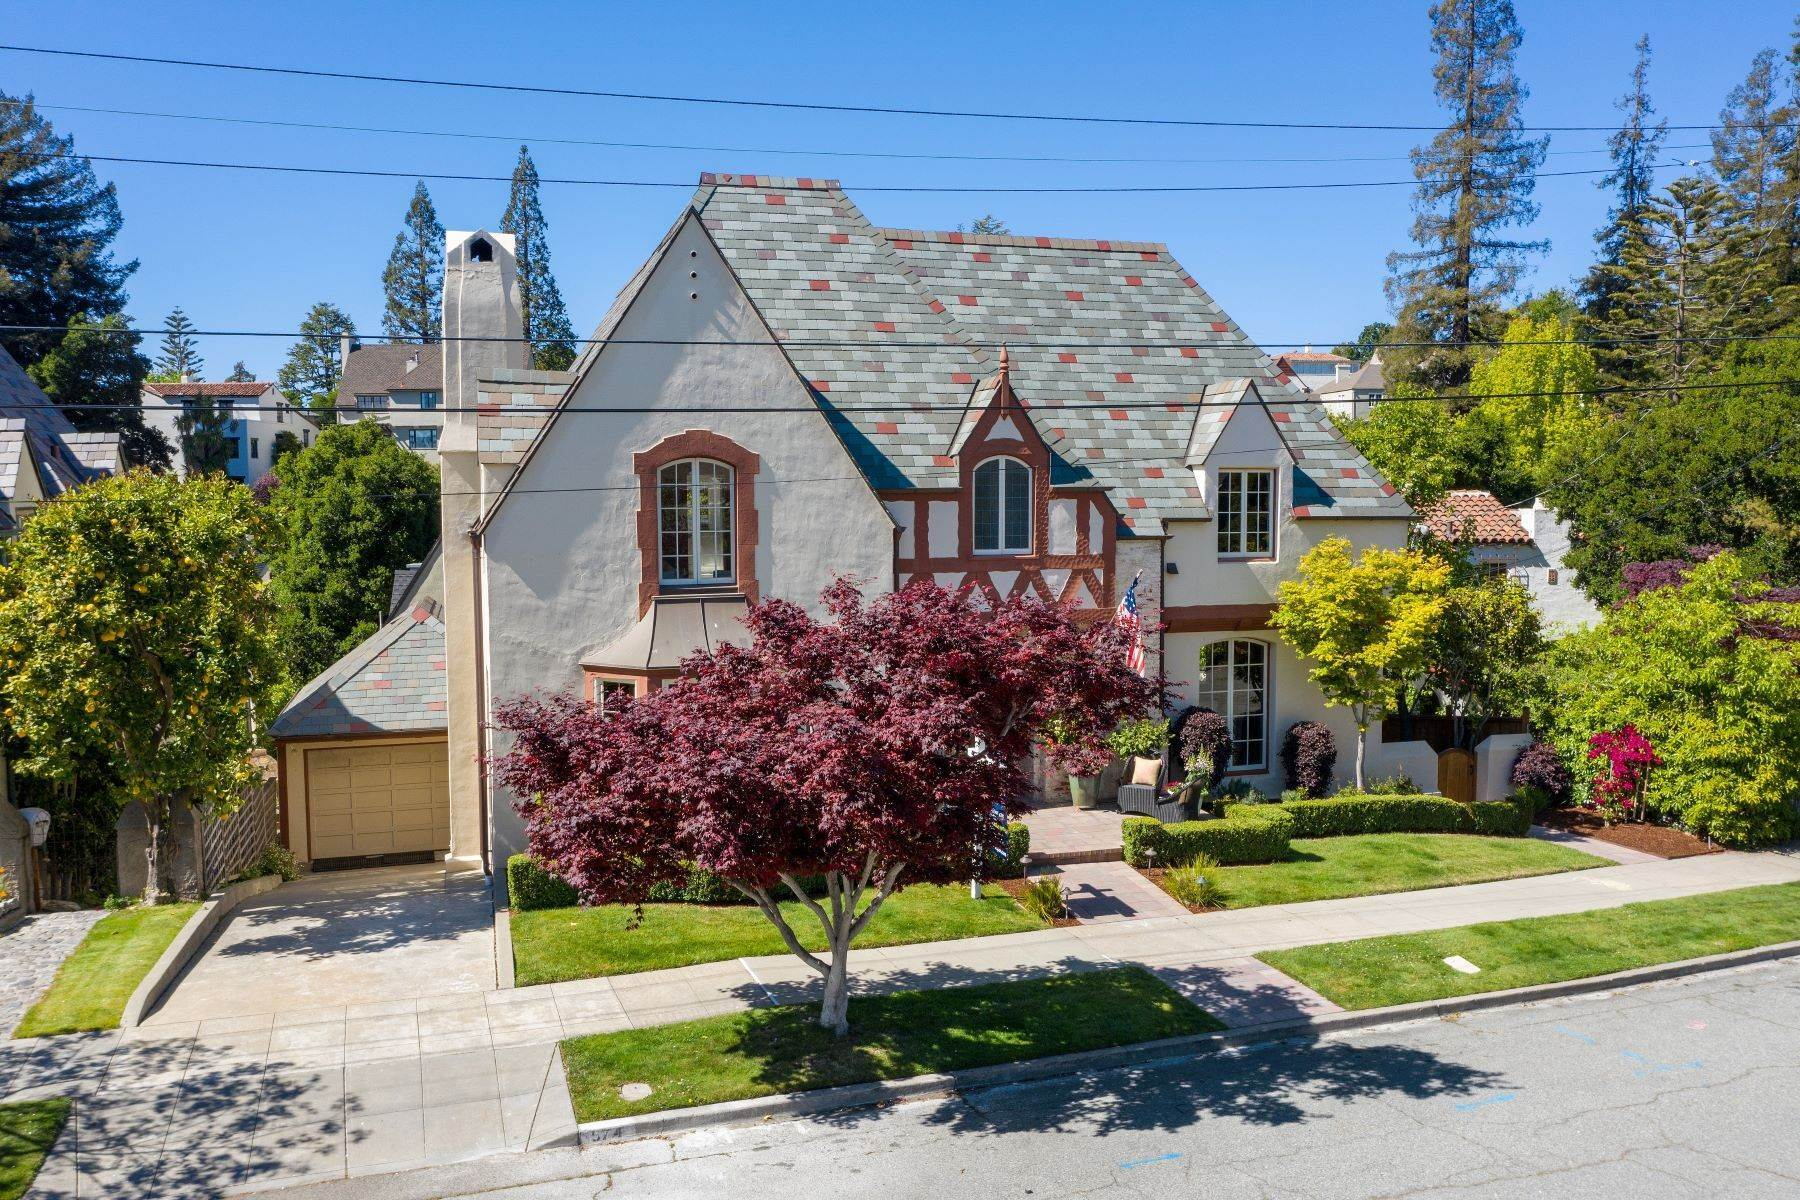 Single Family Homes for Sale at Charismatic Tudor, Fine-Tuned for Today 974 Larkspur Rd Oakland, California 94610 United States